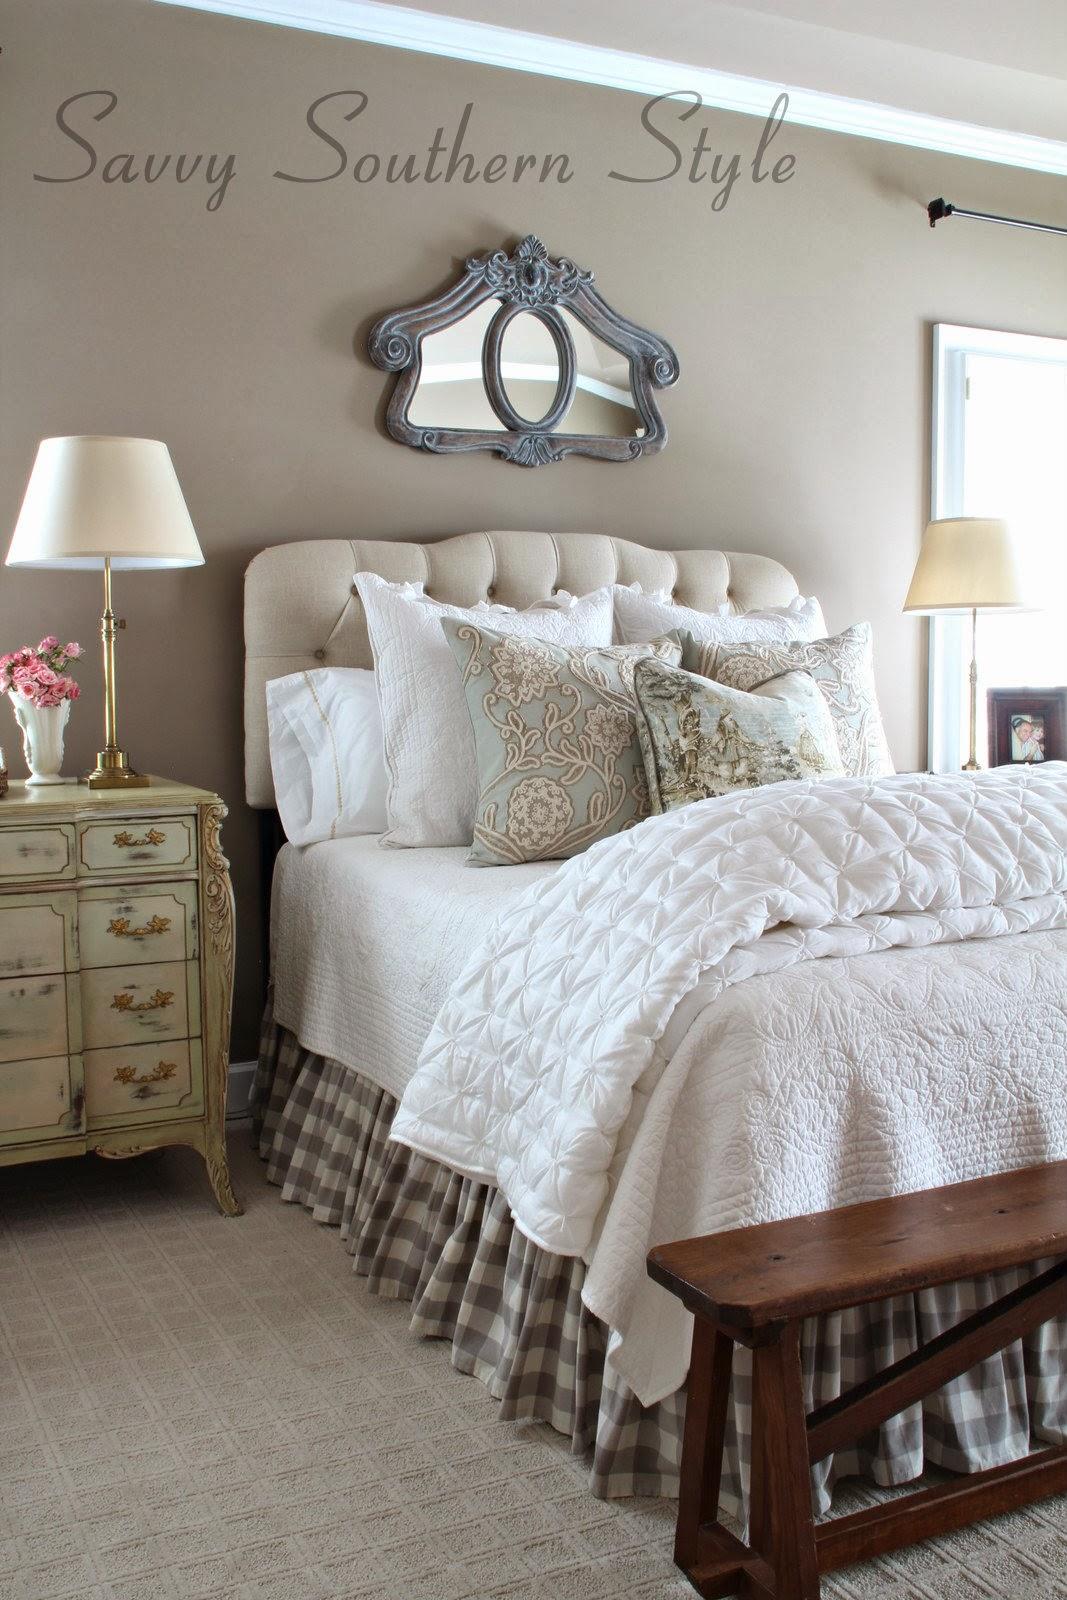 Savvy southern style answering questions about my bed for Farmhouse style bed